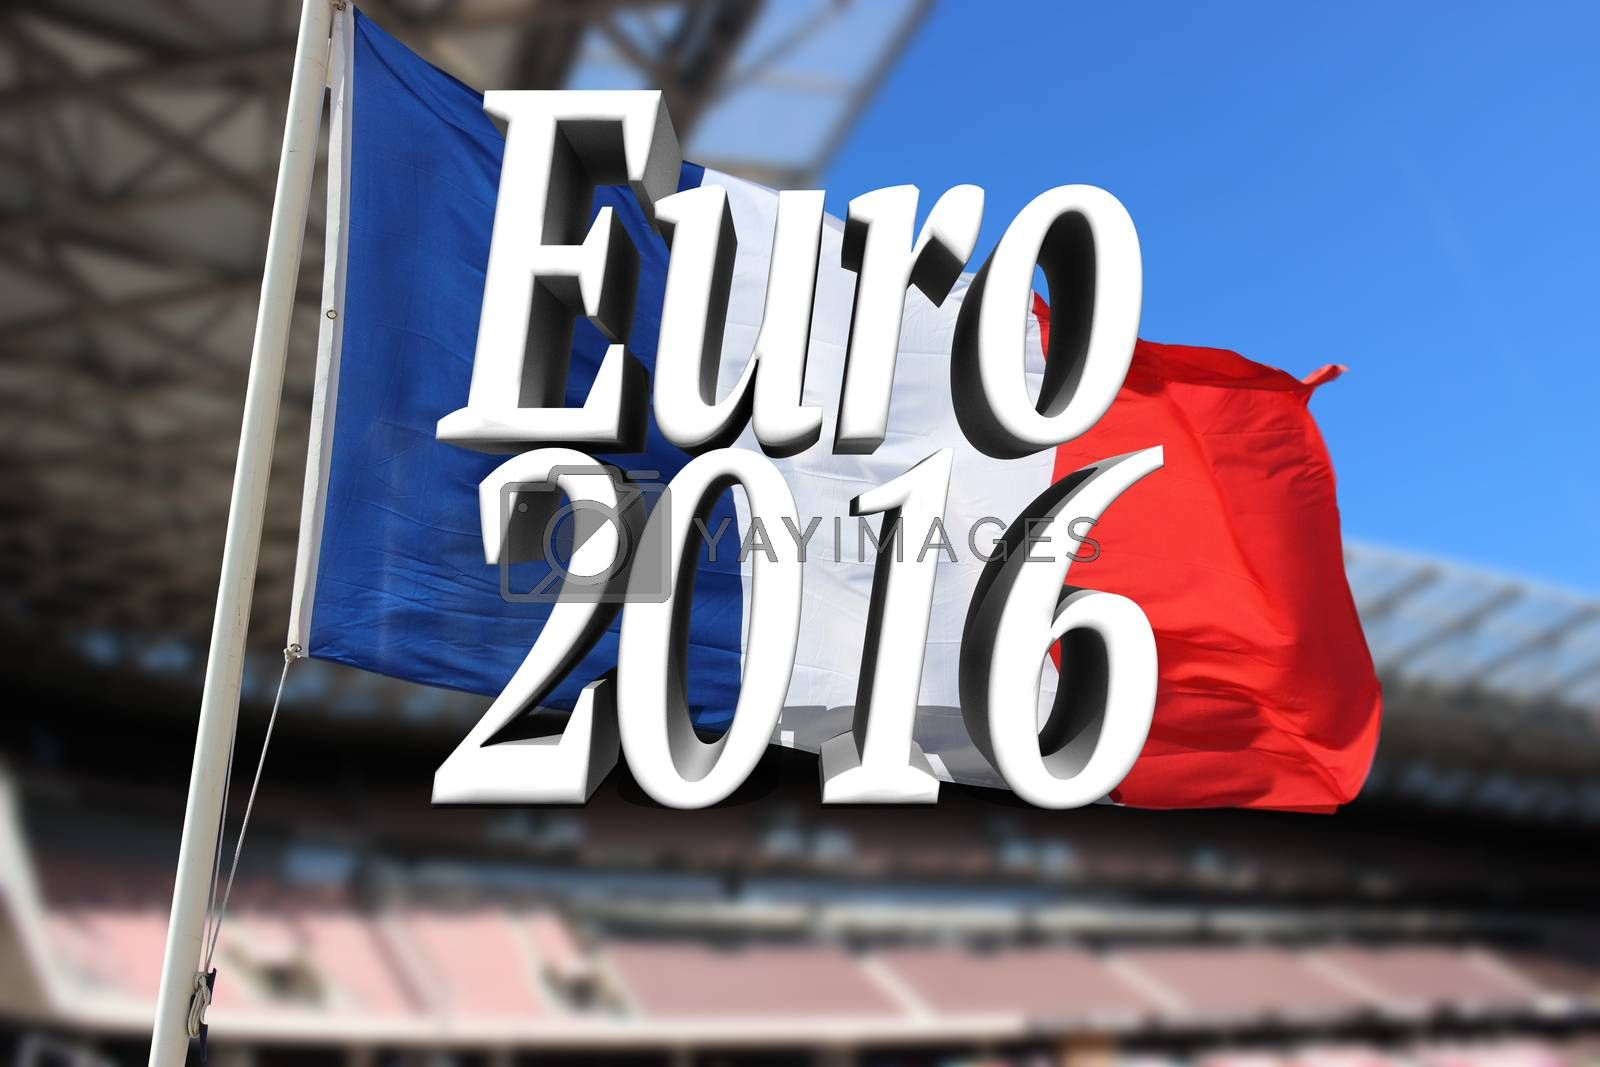 Euro 2016 France Football Championship. French Flag and Soccer Stadium in the Background